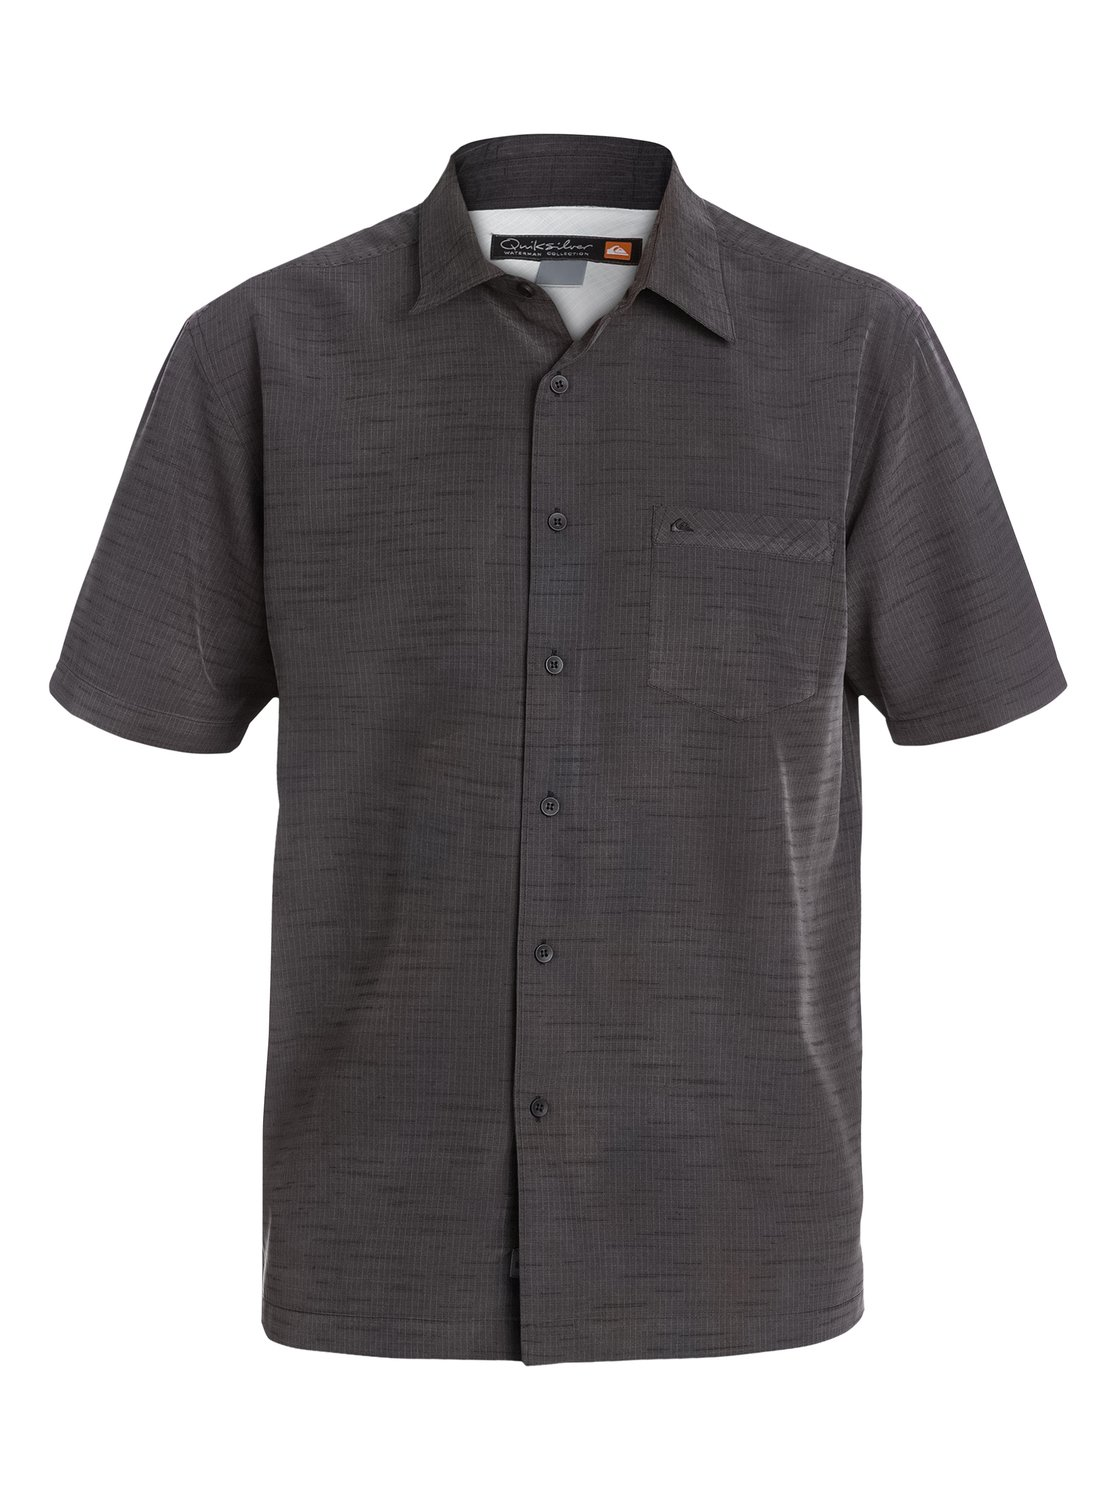 Quiksilver waterman centinela short sleeve shirt for Short sleeved shirts for men